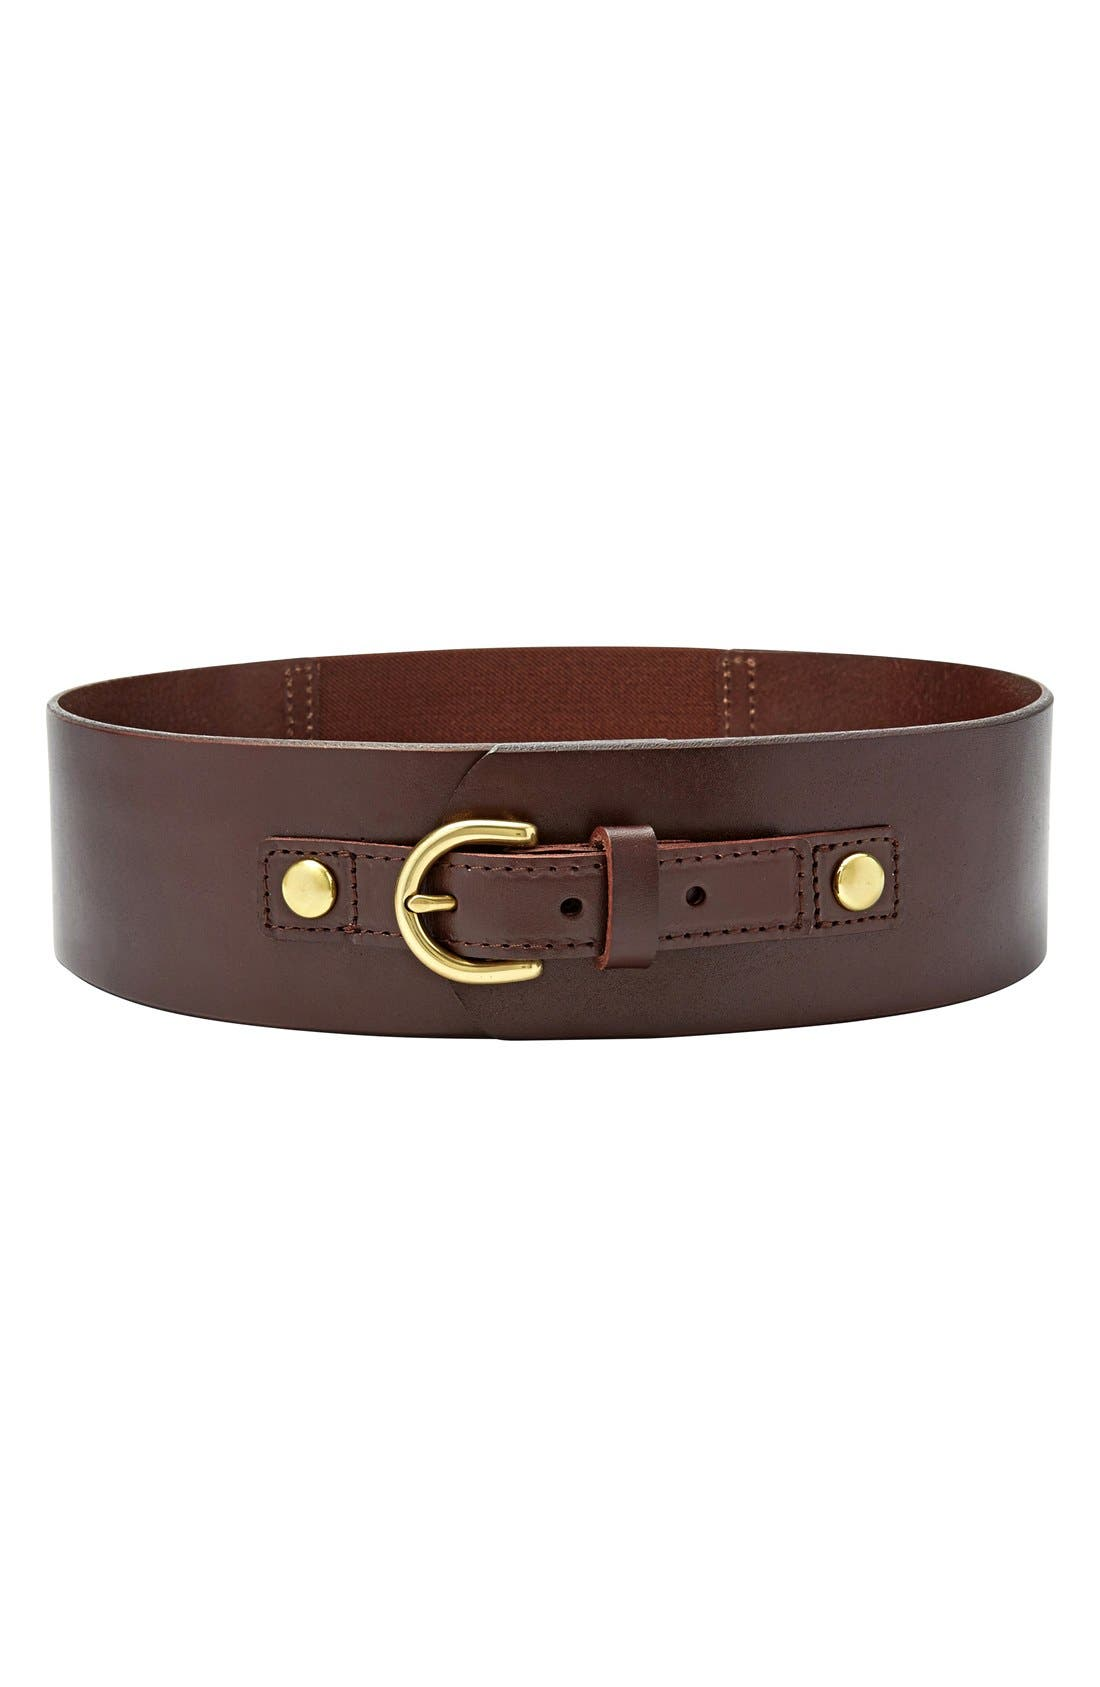 FOSSIL Wide Leather Belt, Main, color, 200